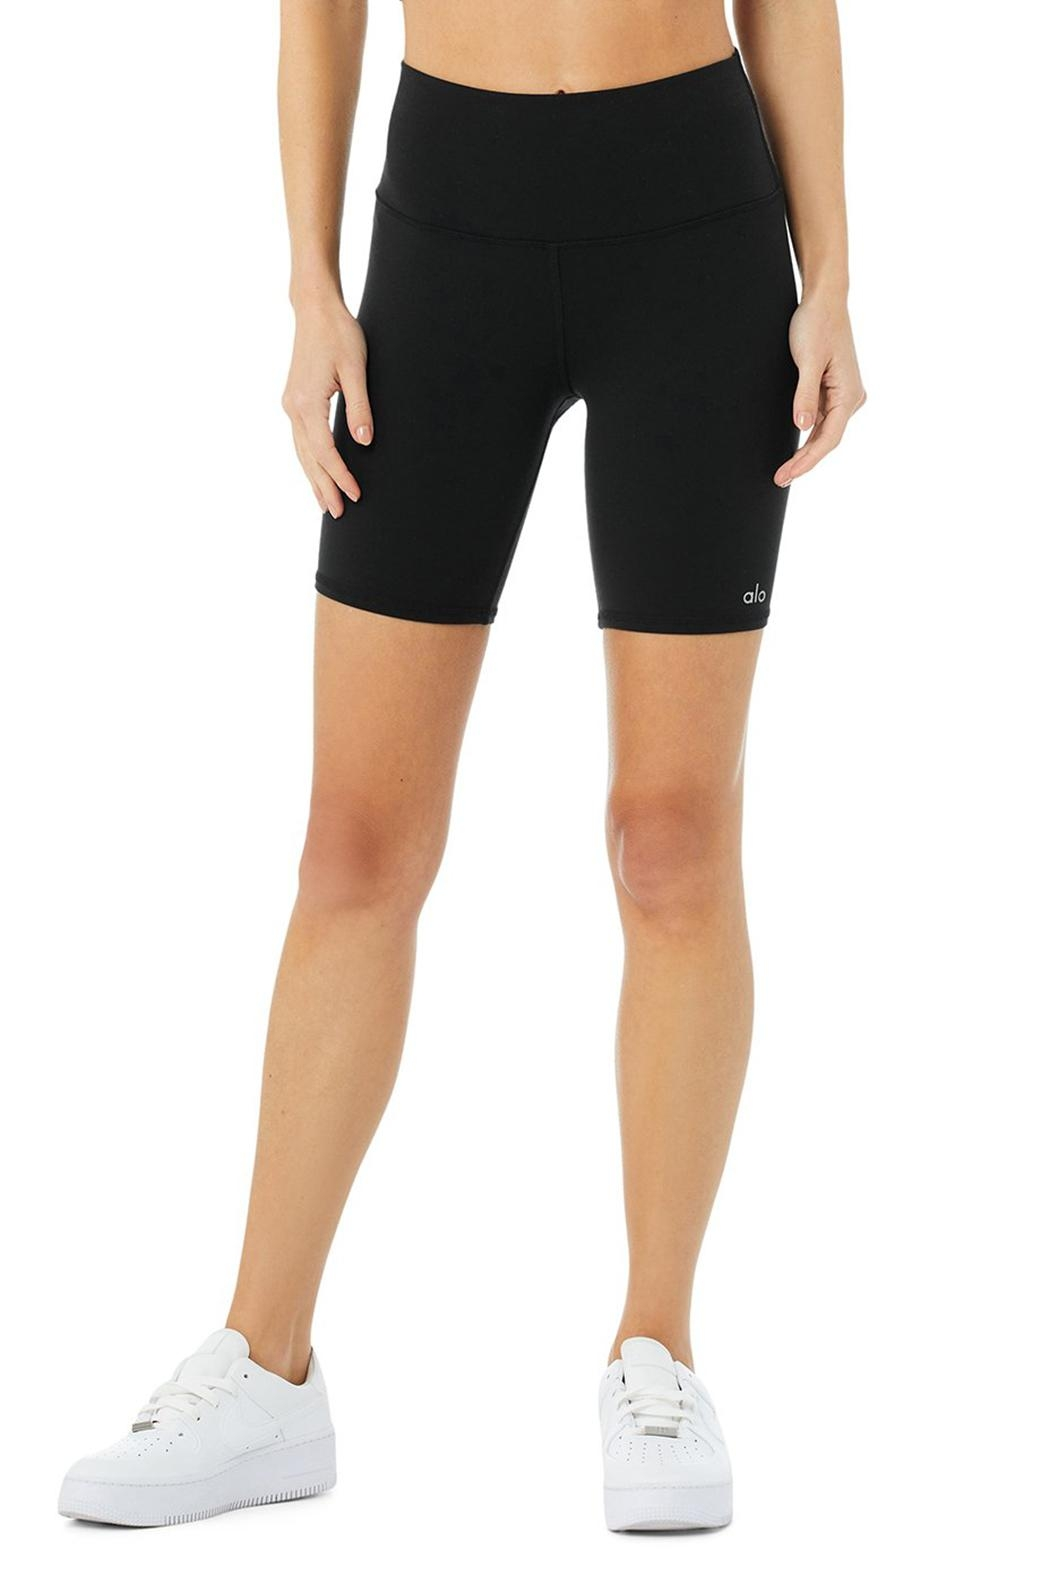 ALO High-Waist Biker Short - Main Image